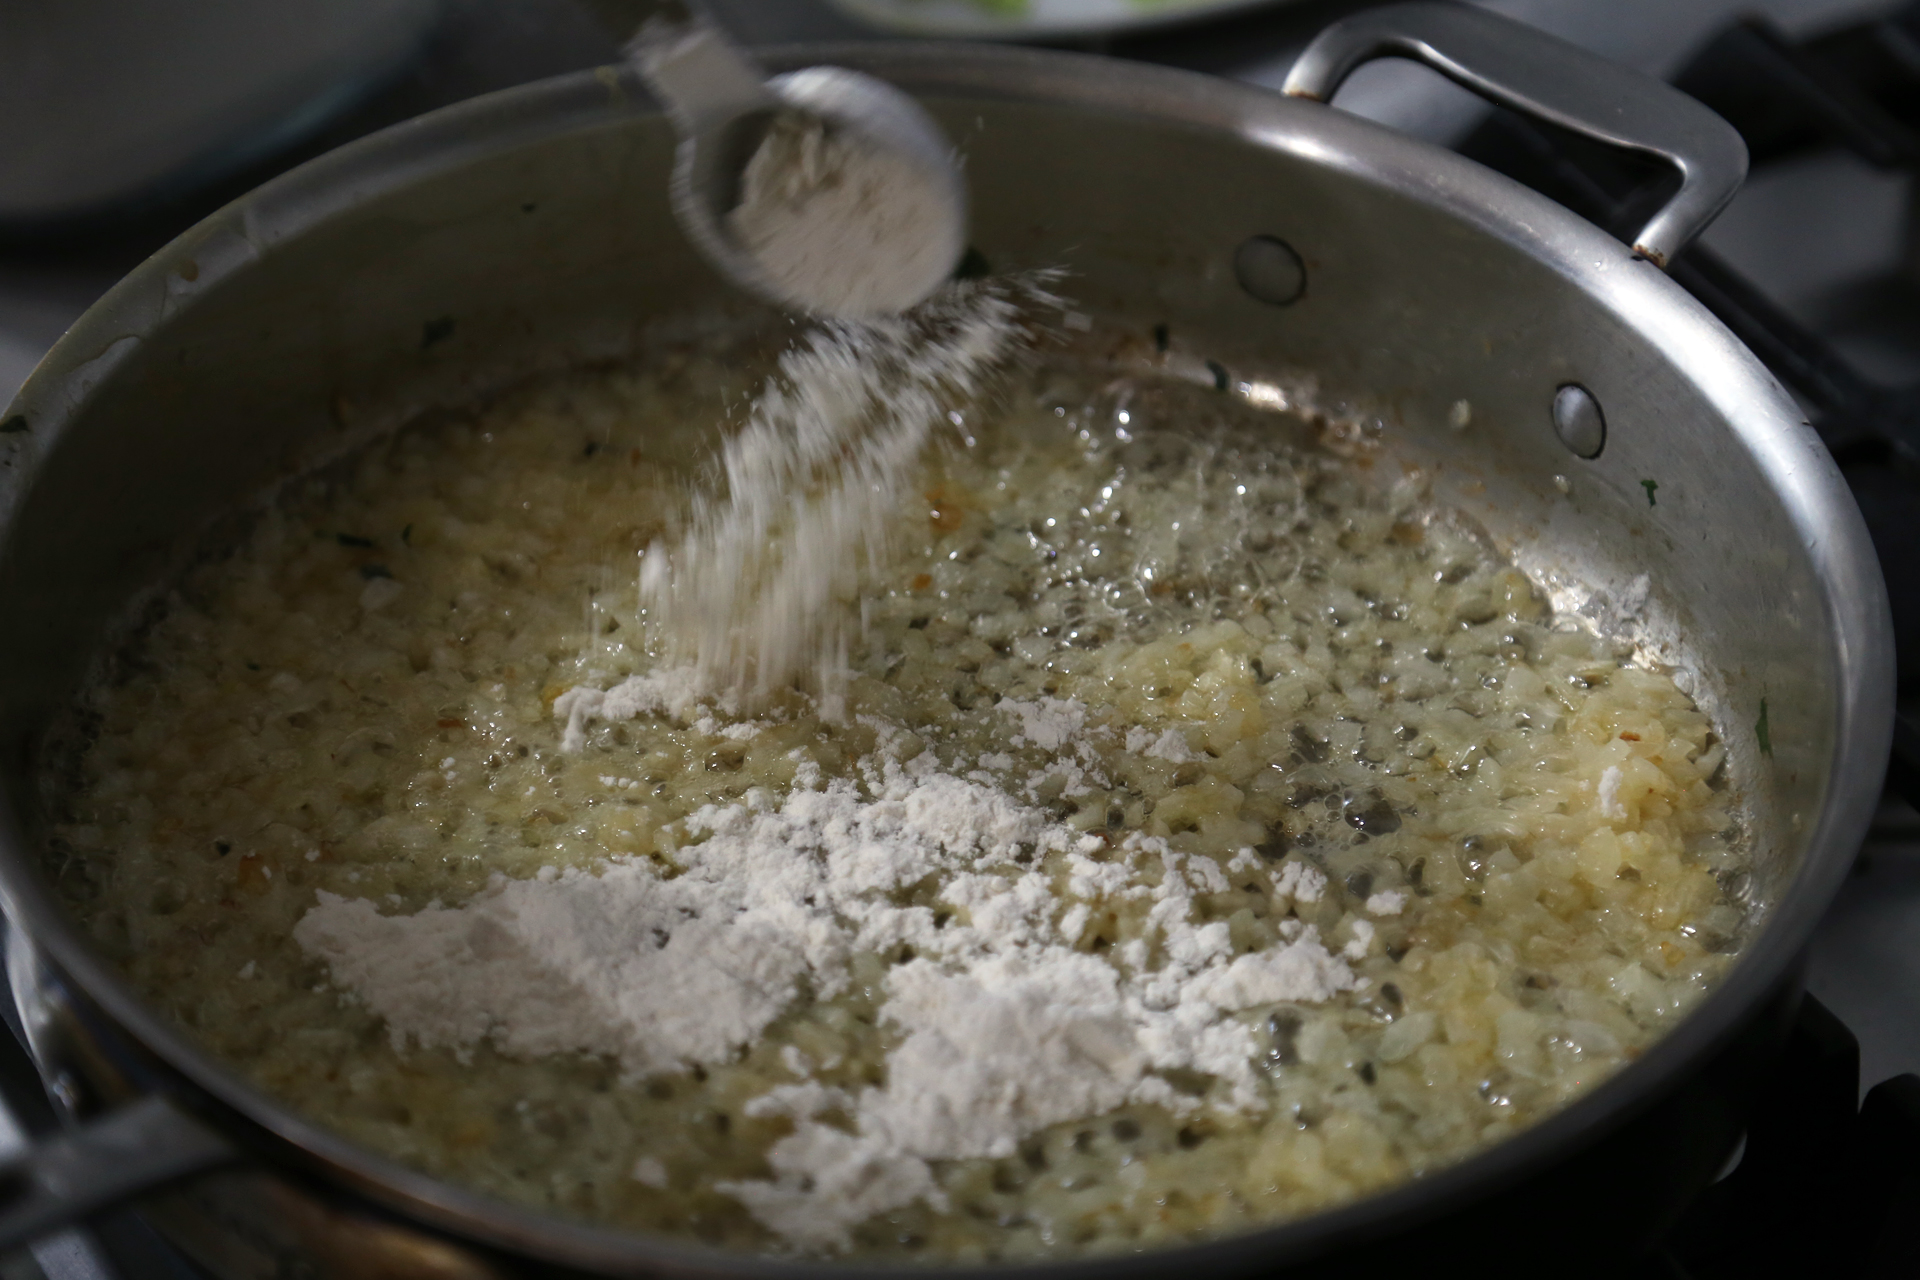 In the same pan, melt the remaining 5 tablespoons butter over medium heat. Add the onion and a sprinkle of salt and cook, stirring, until golden brown, about 10 minutes. Stir in the flour and let bubble for about 2 minutes.